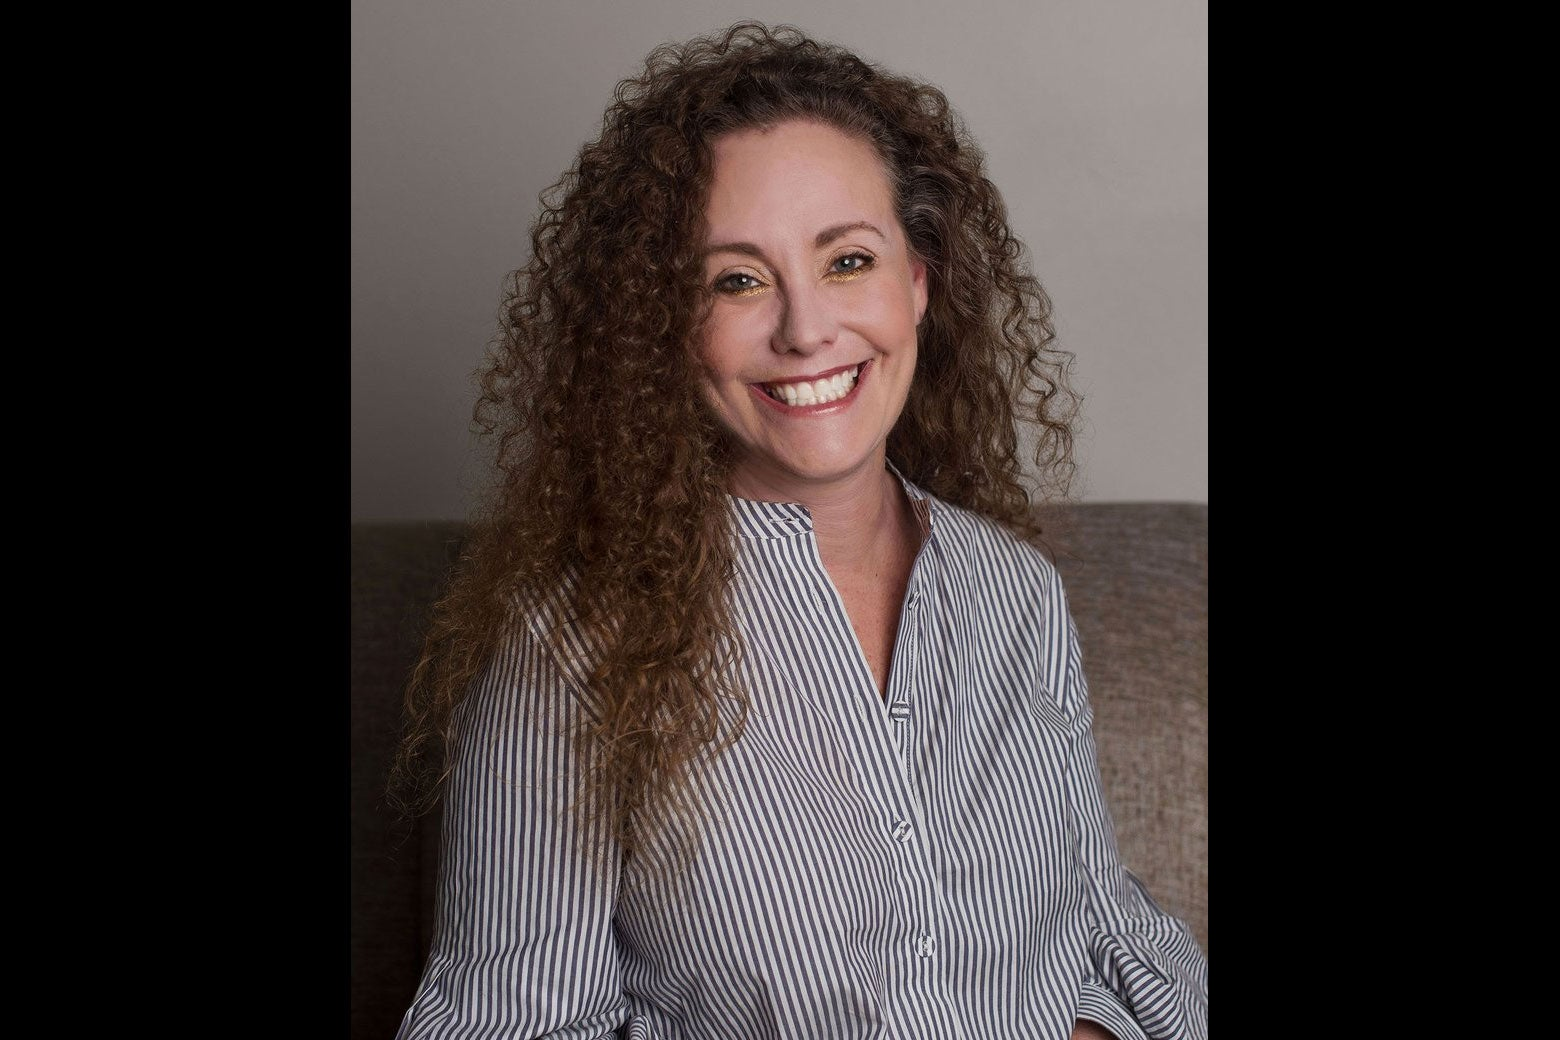 Swetnick, seated in a button-down shirt, smiles while looking into the camera.